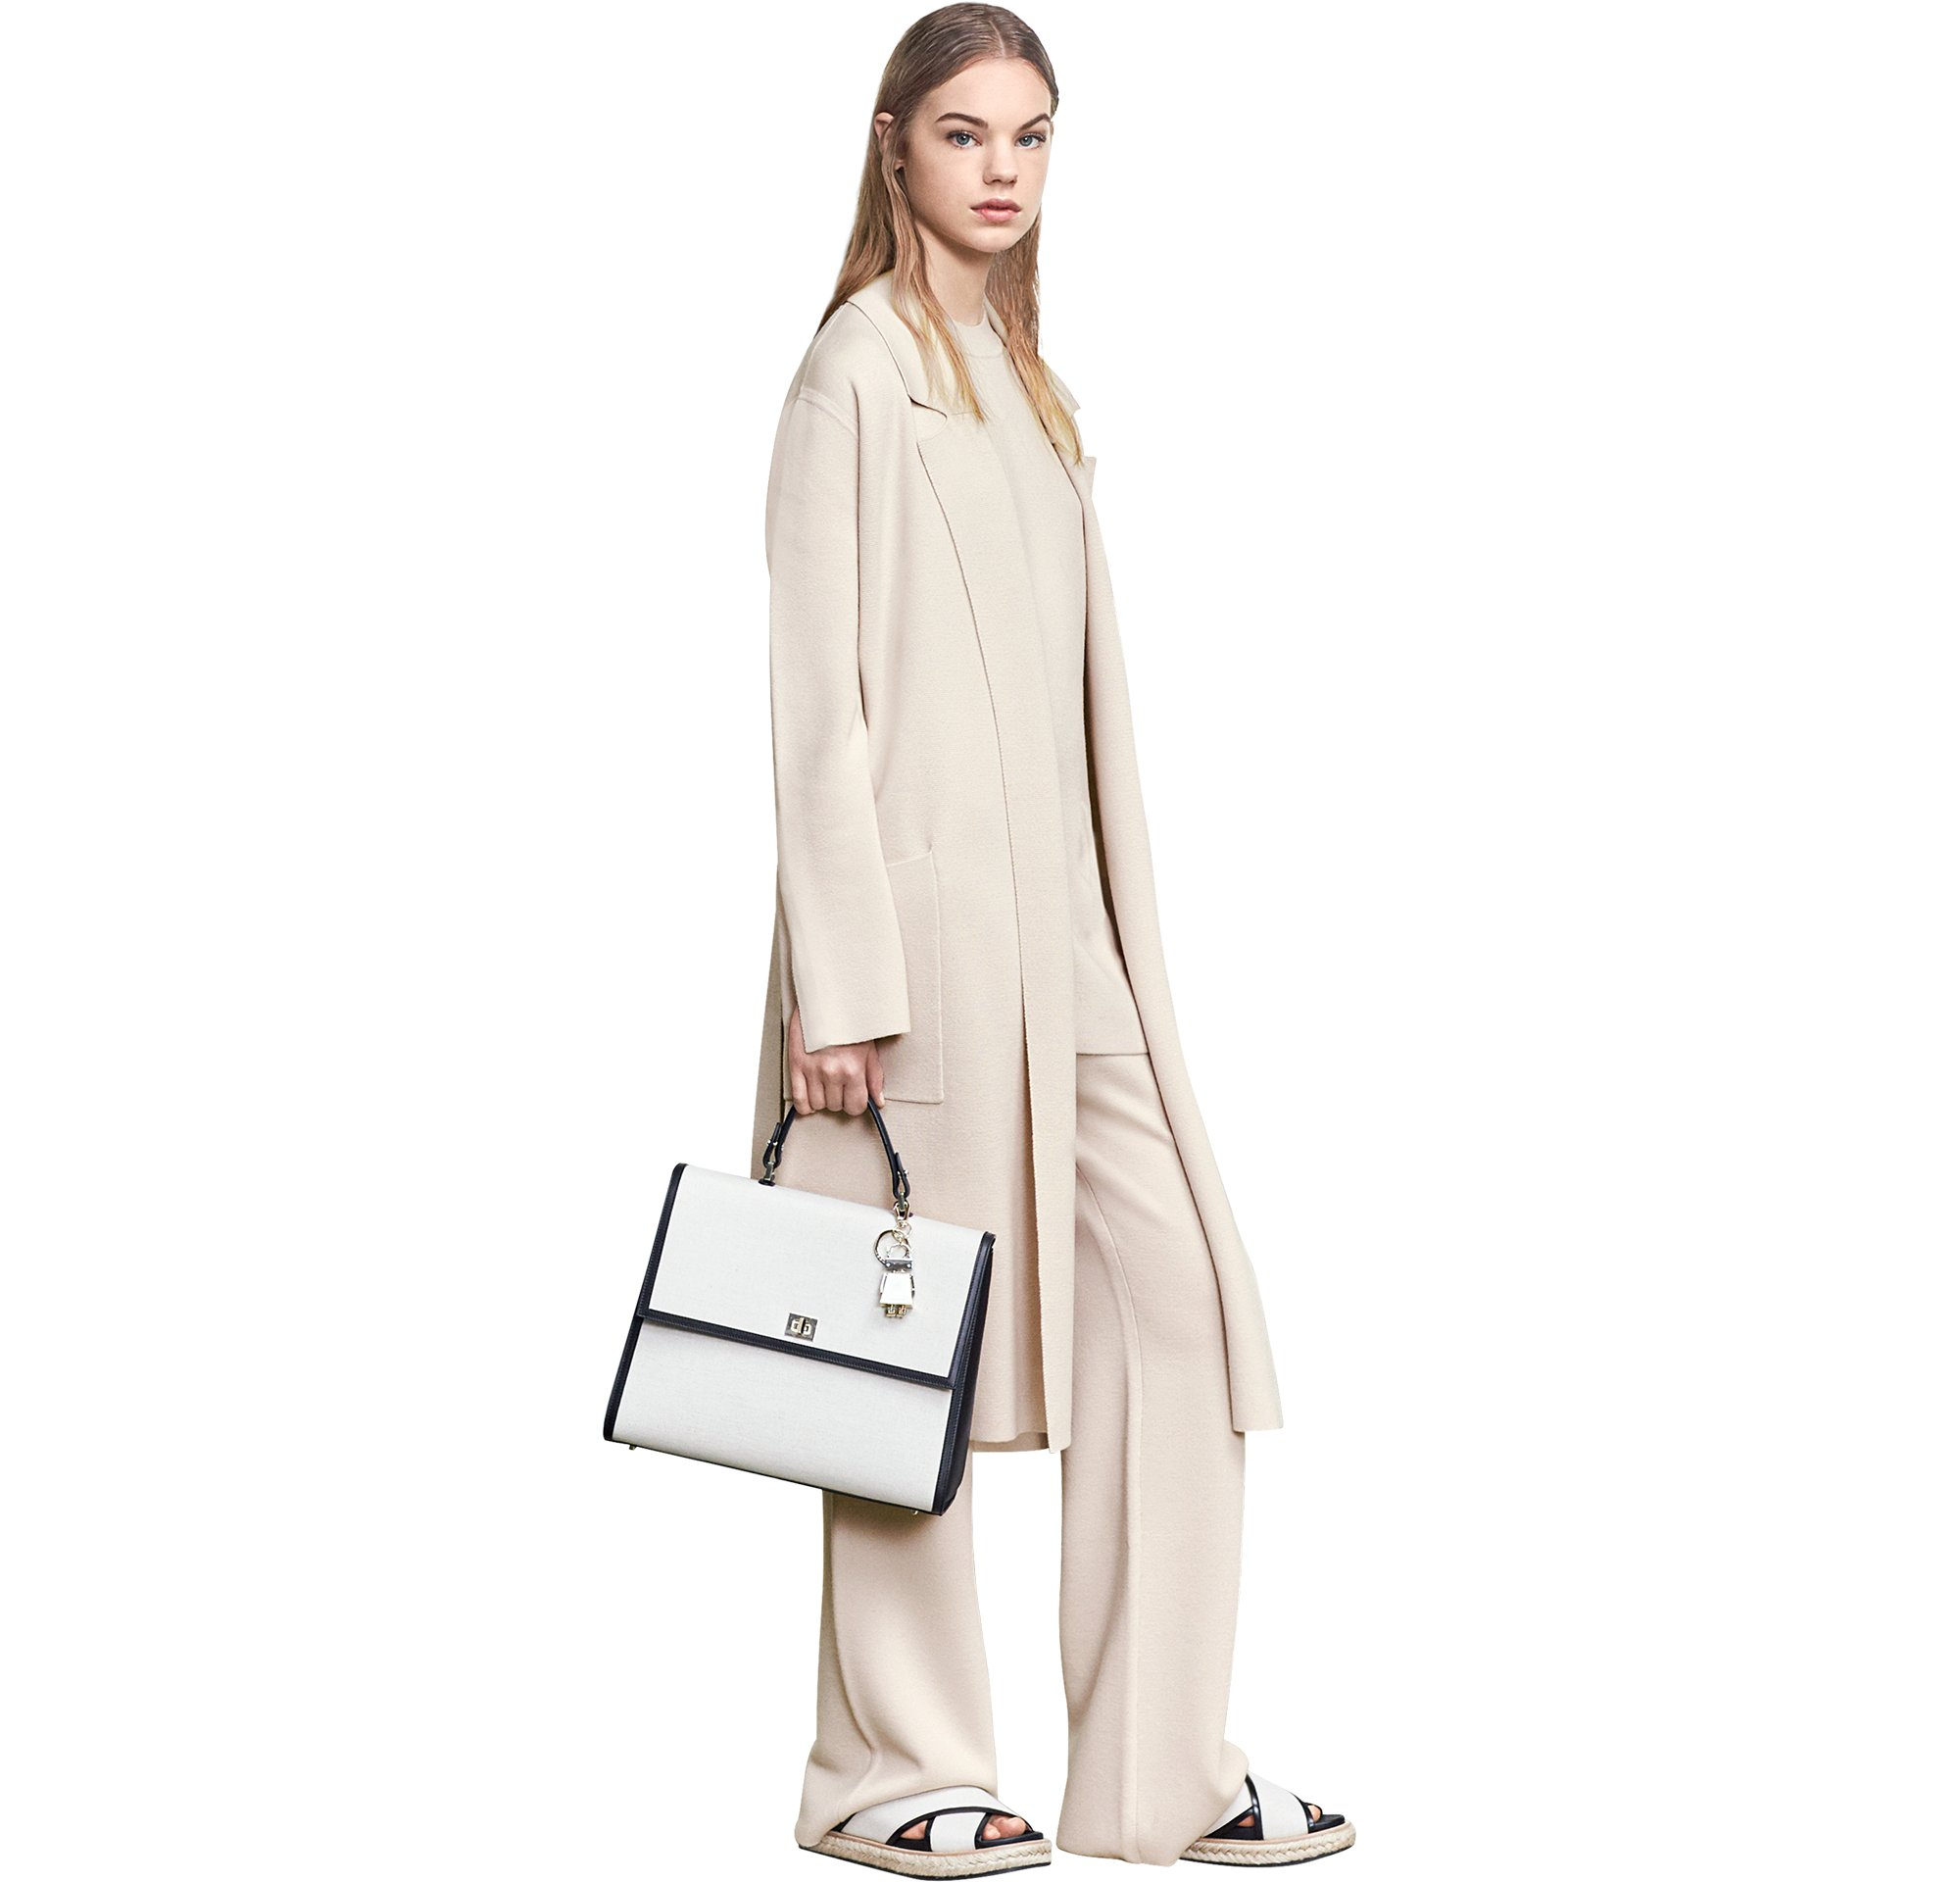 Light beige knitwear over knitwear and trousers with leather bag and shoes by BOSS